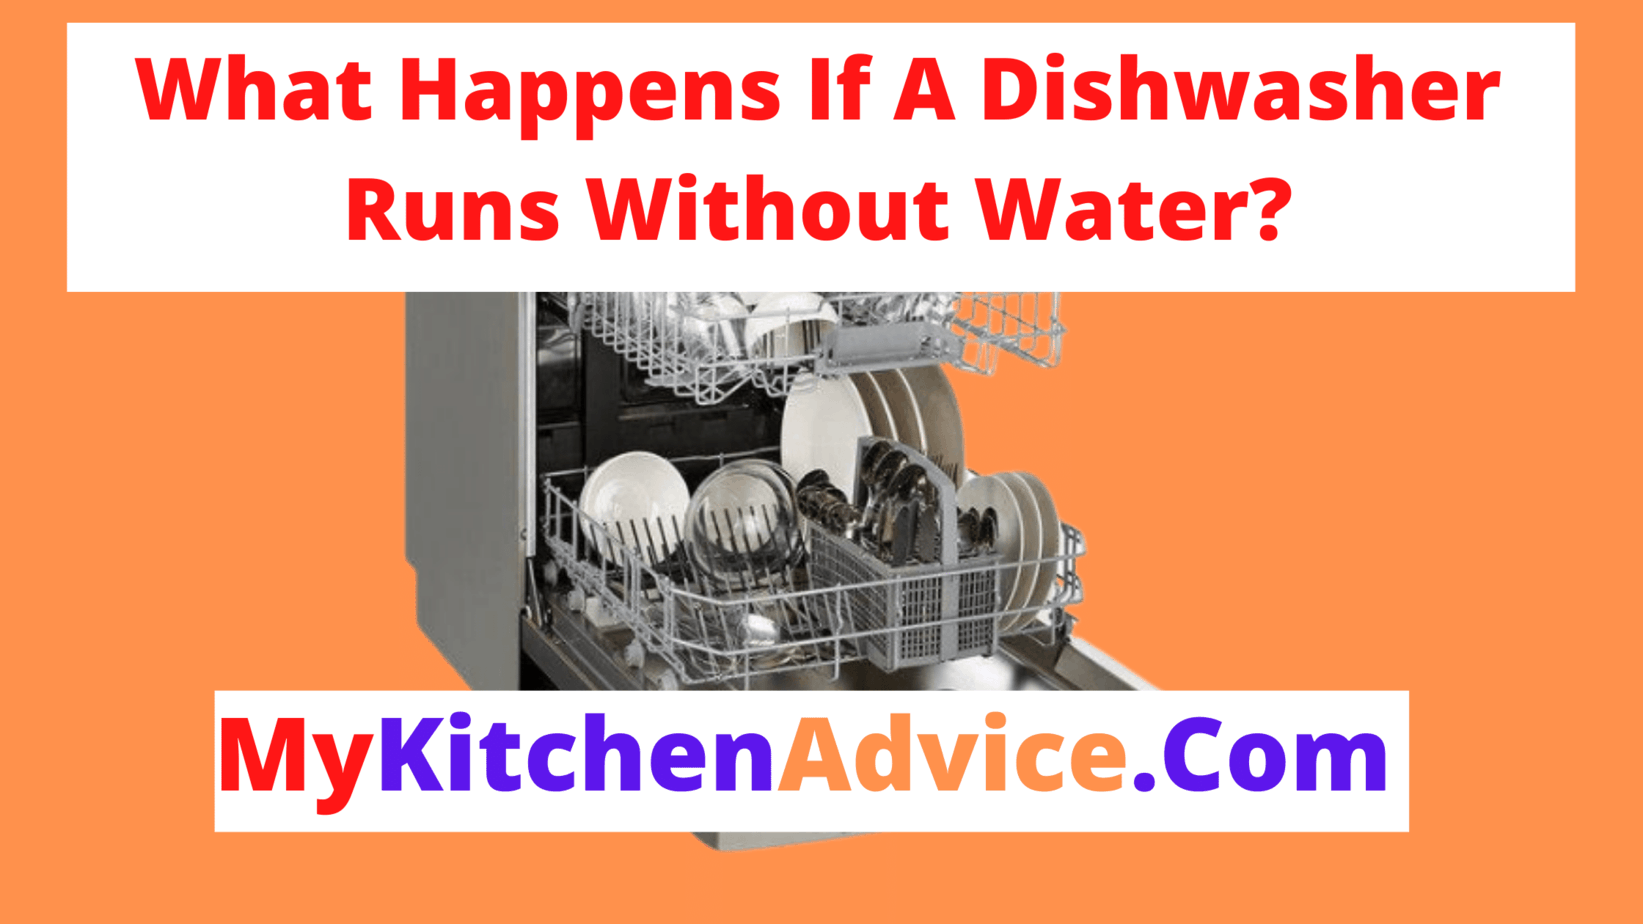 What Will Happen If A Dishwasher Runs Without Water